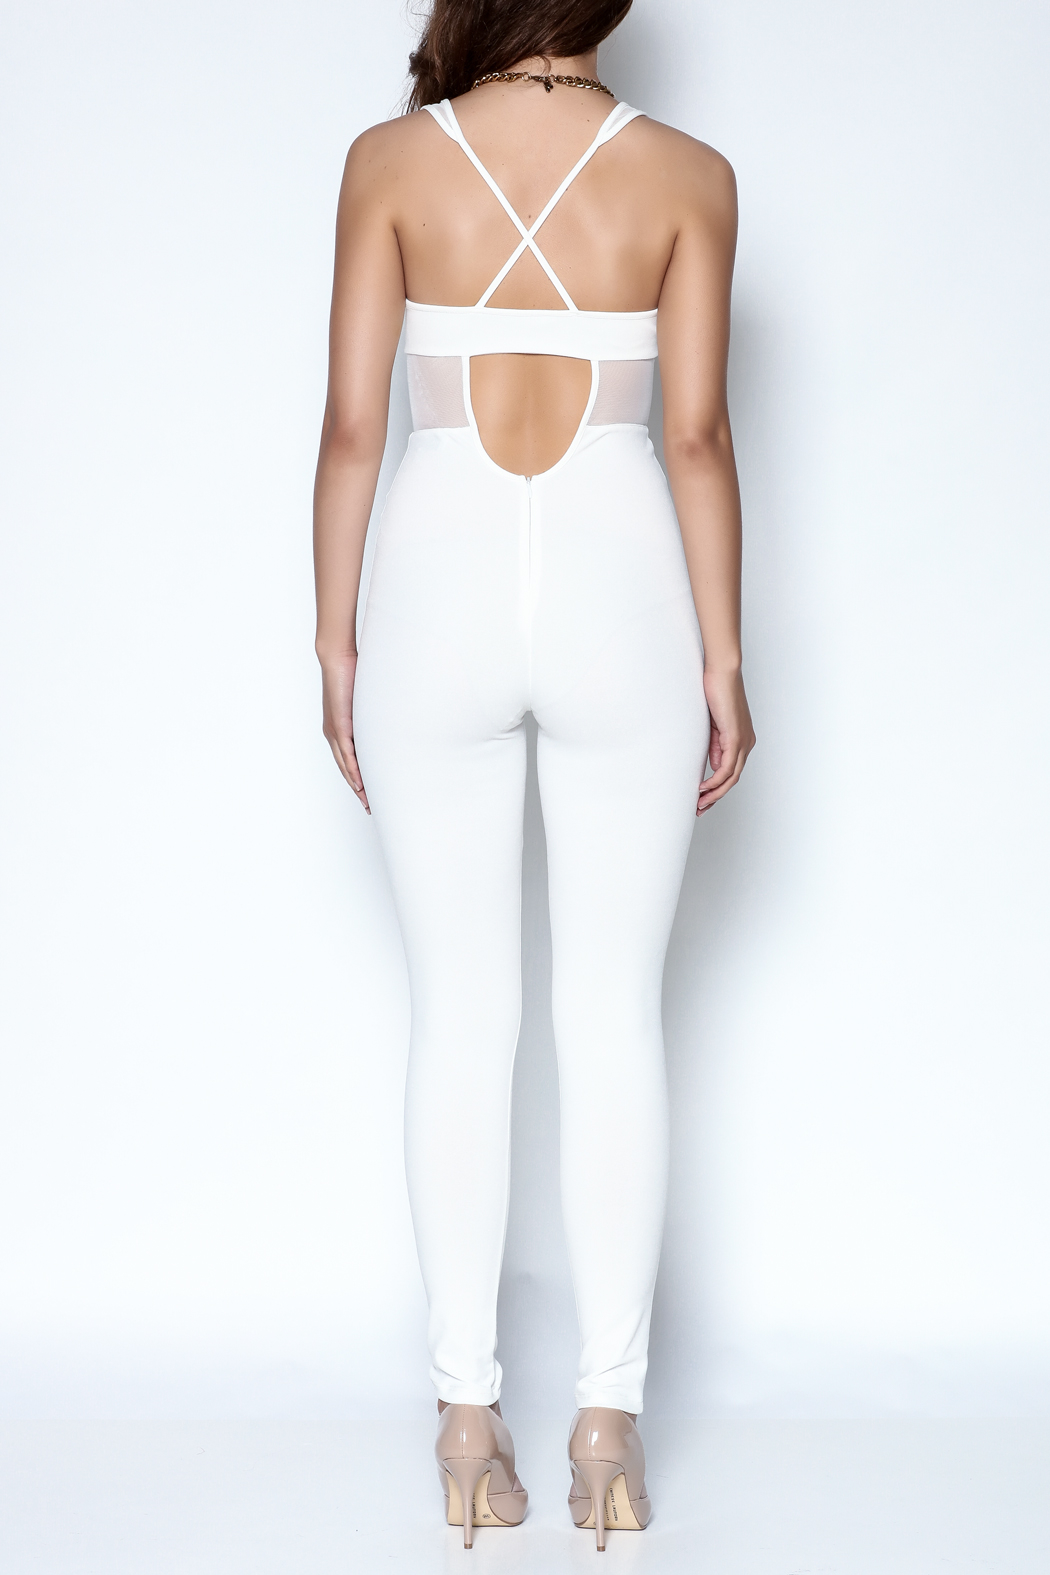 simple the label X Back Jumpsuit - Back Cropped Image